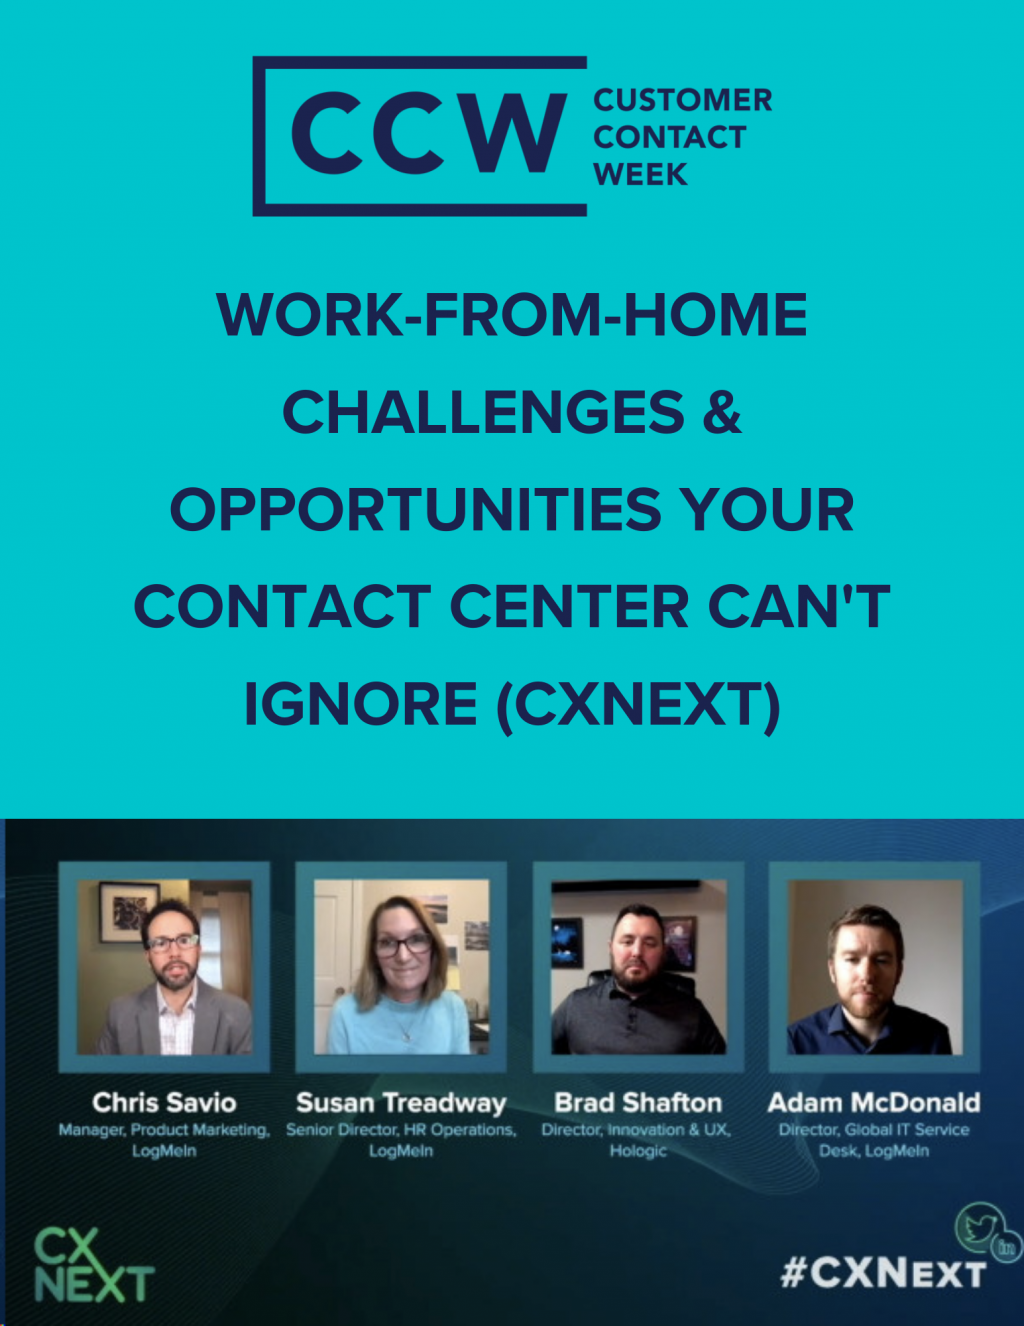 Work-From-Home Challenges & Opportunities Your Contact Center Can't Ignore (CXNext)